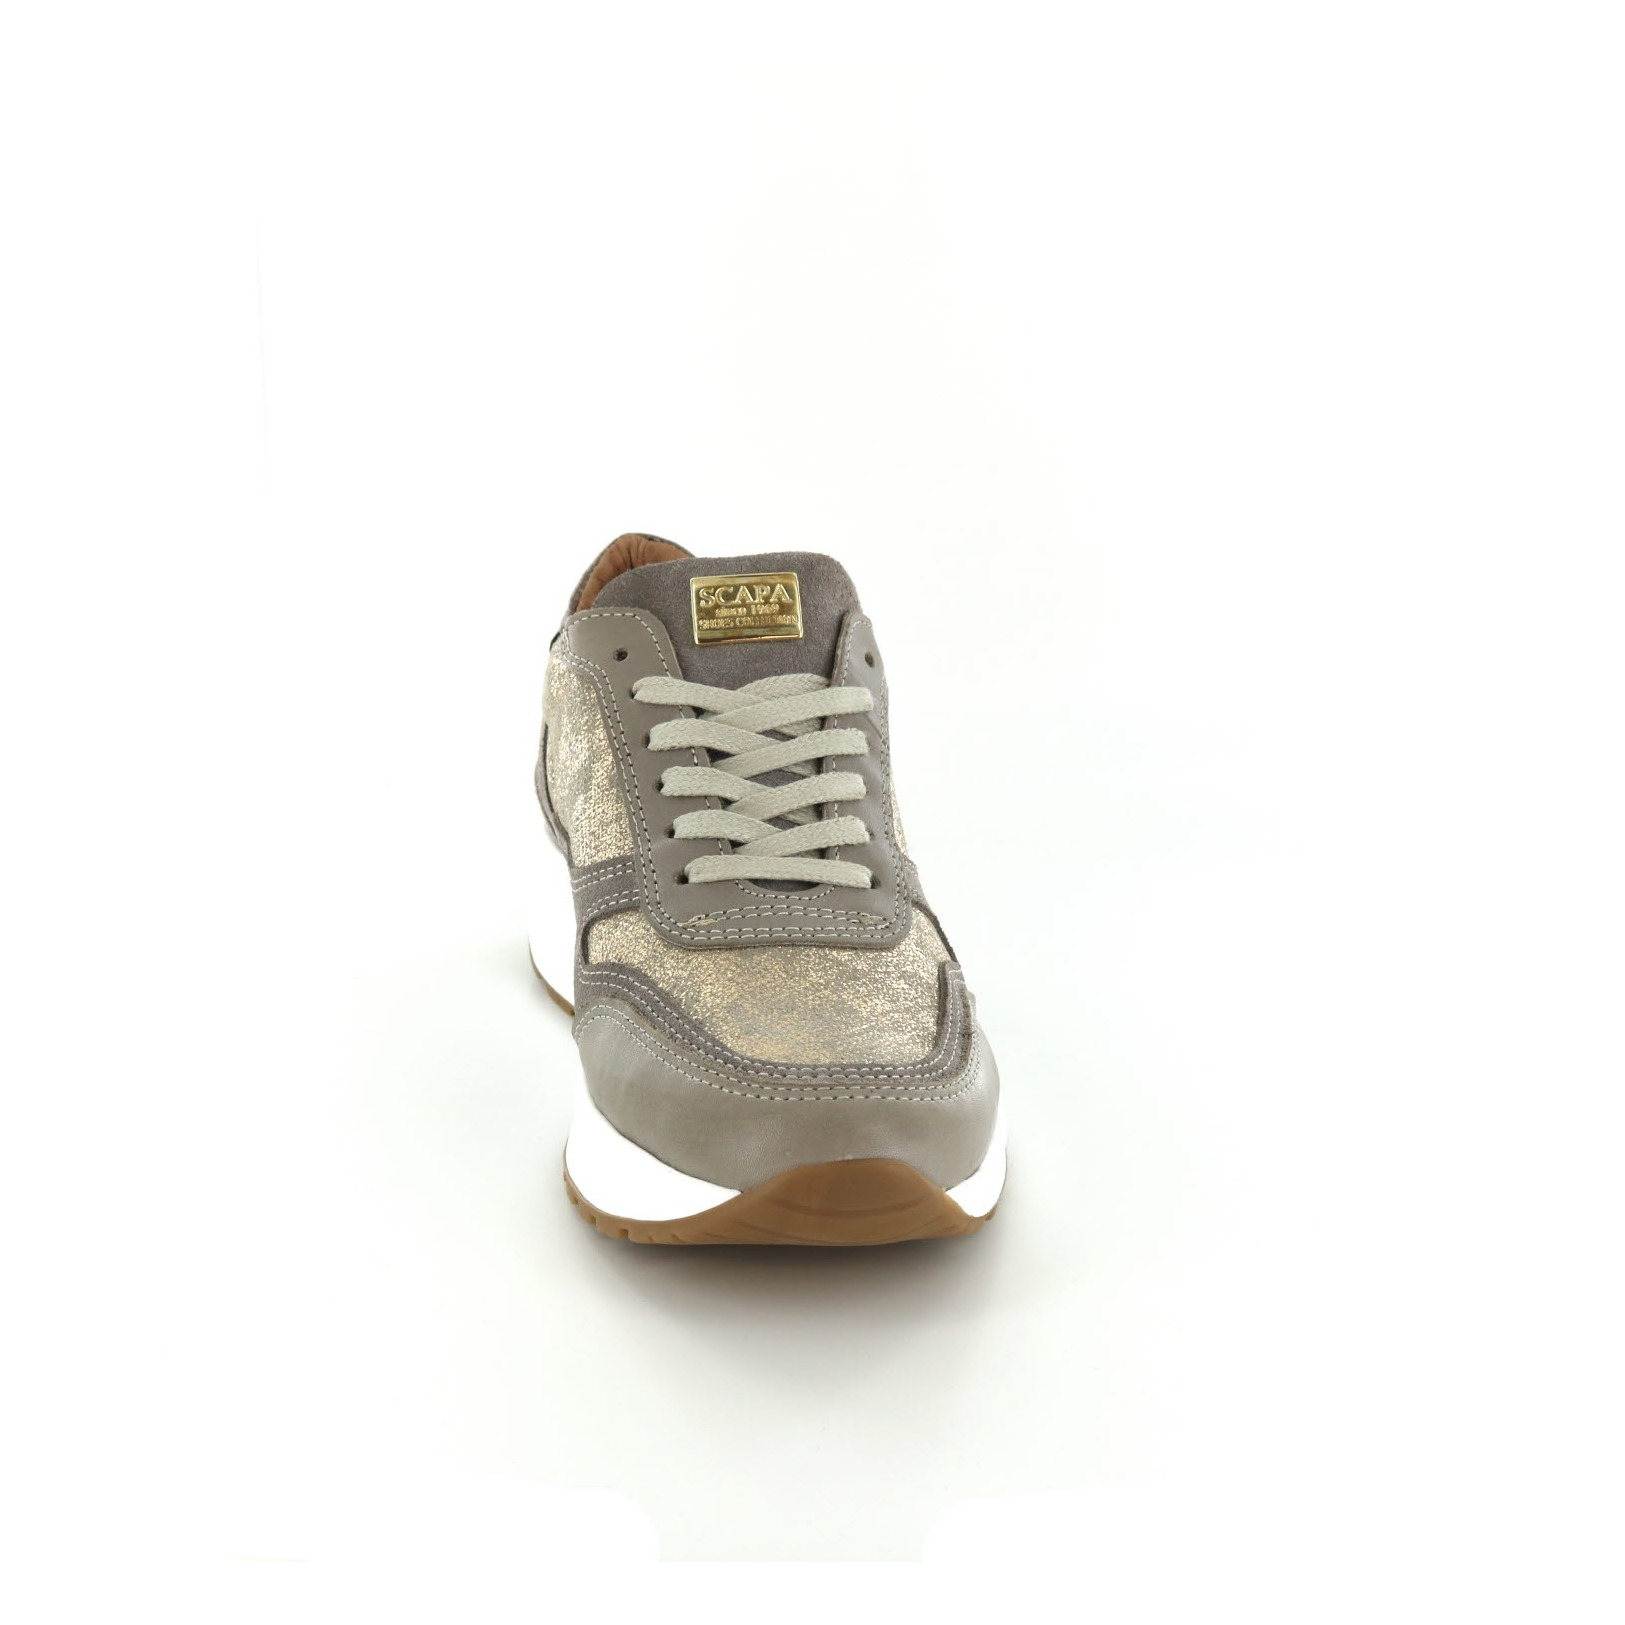 Chaussures Scapa / Dentelle - Chaussures De Sport, Taupe